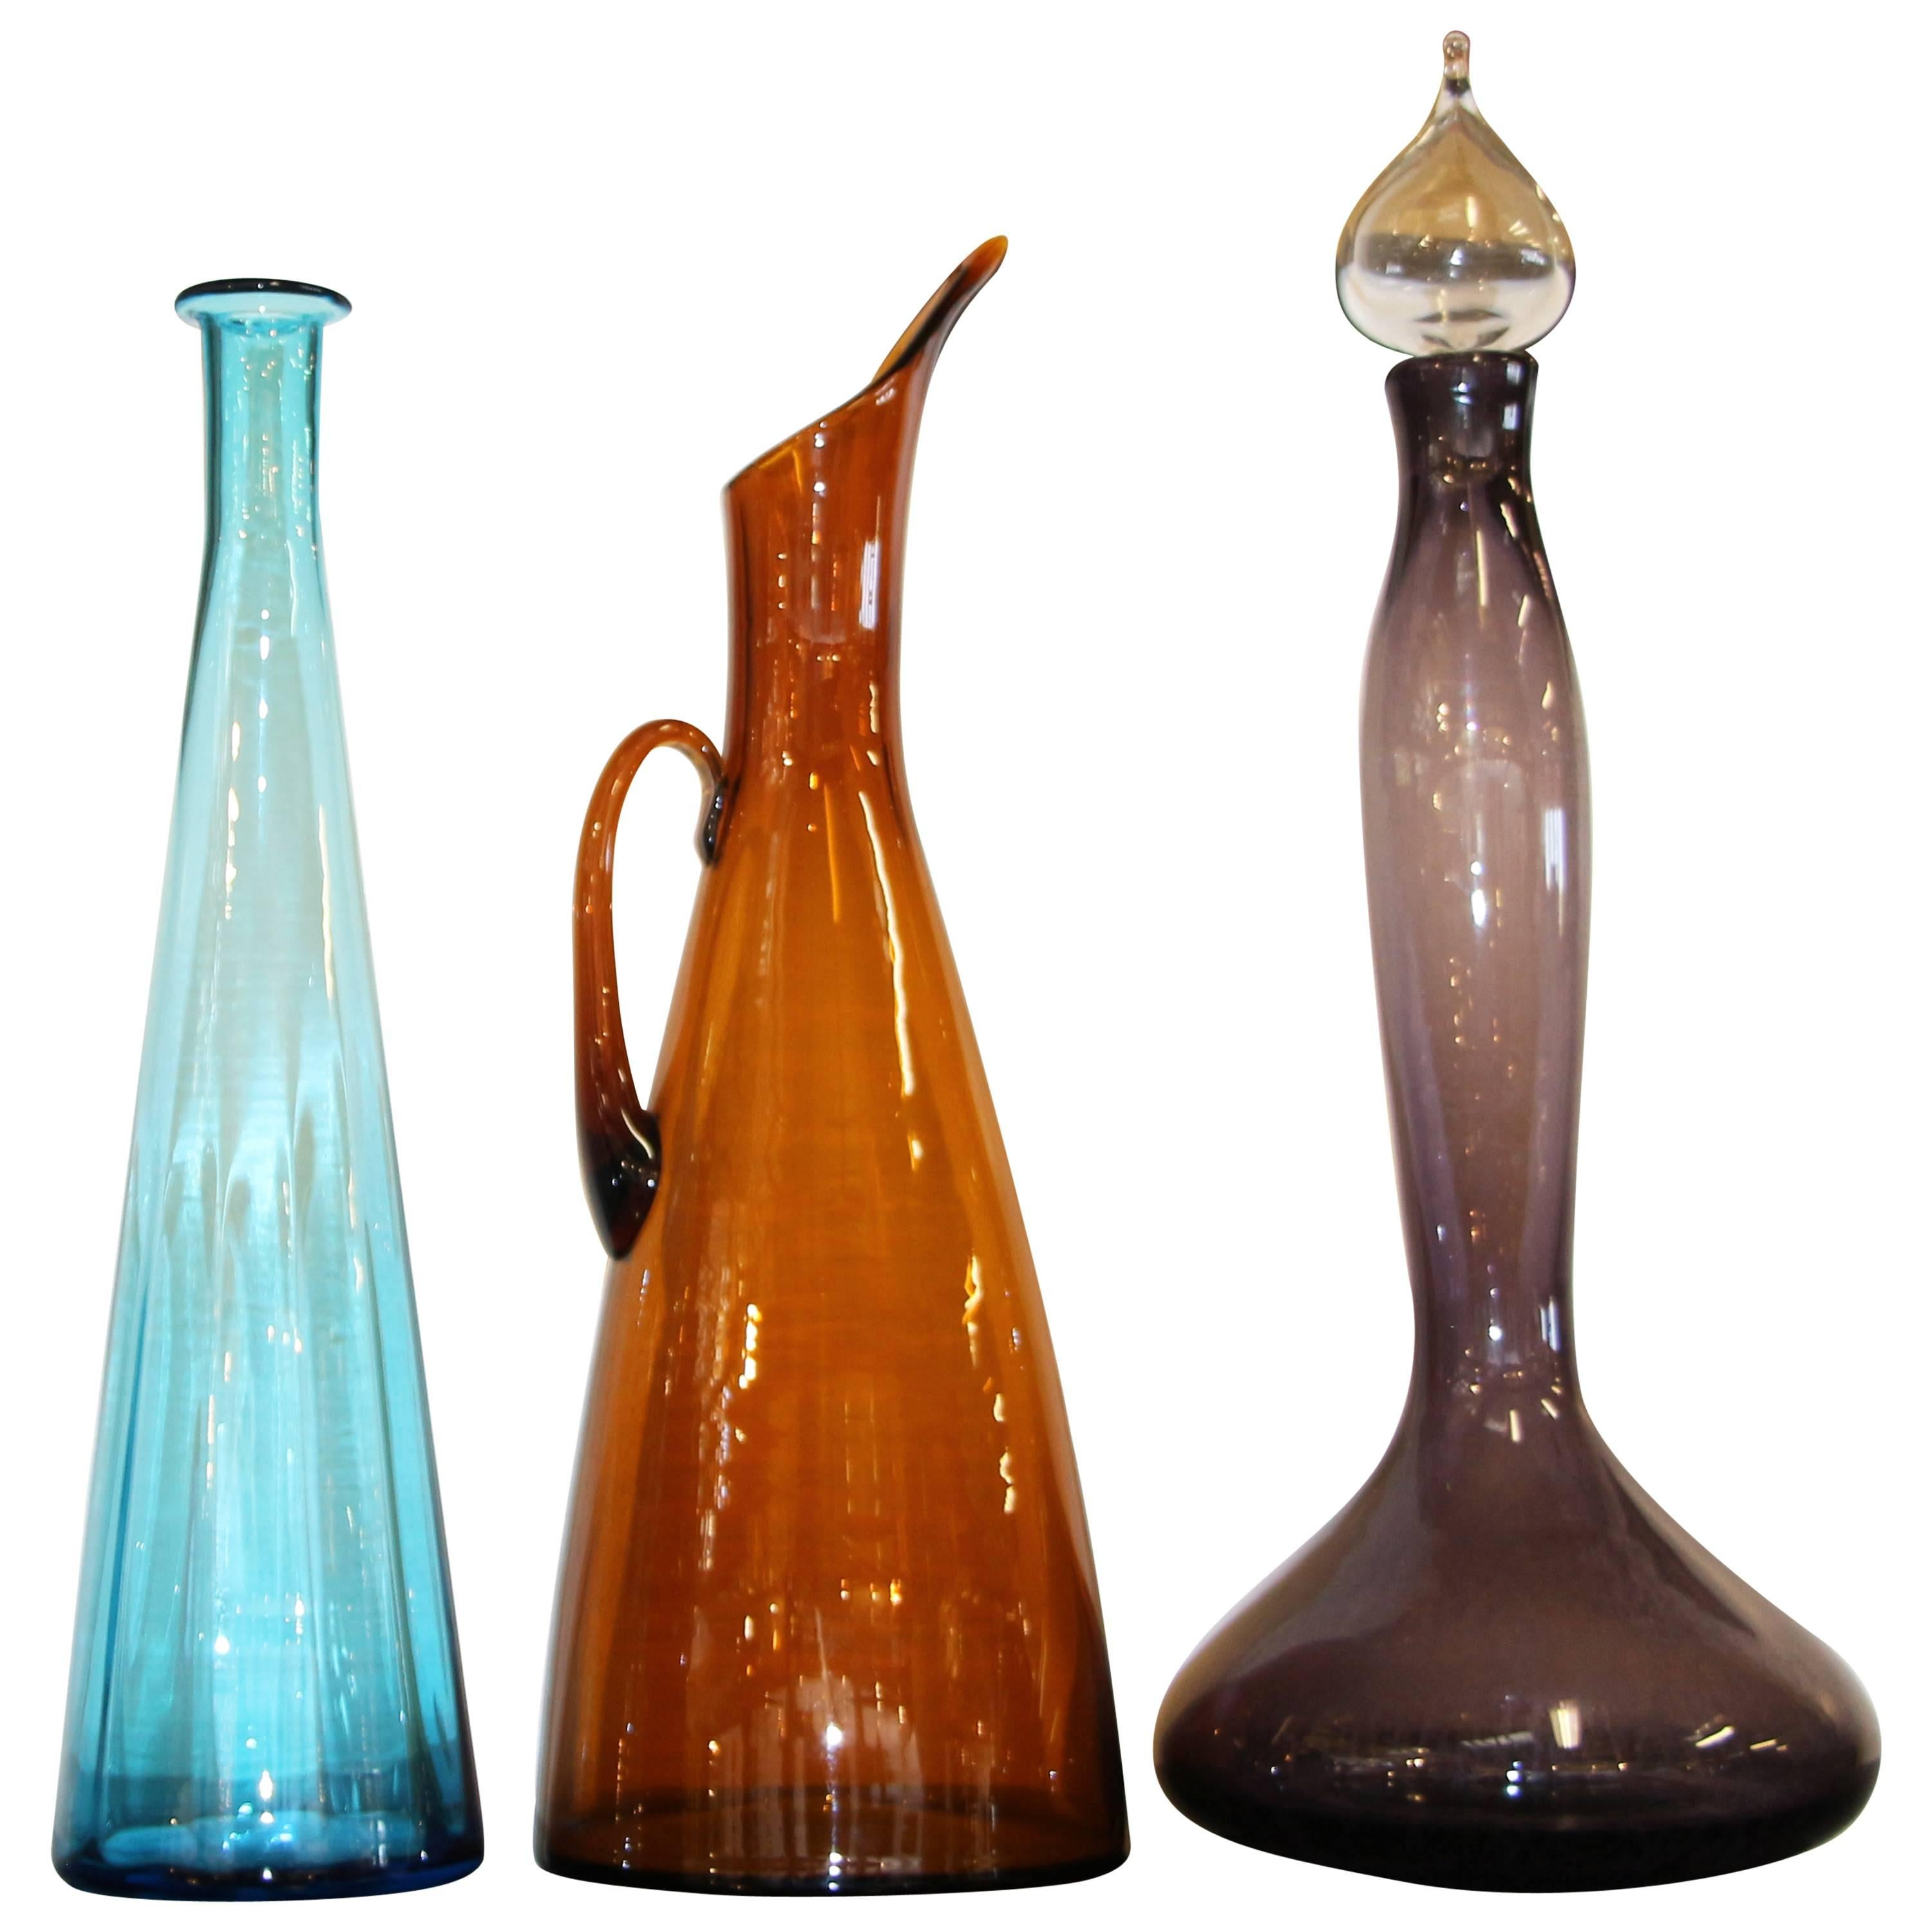 Three Blenko Glass Vessels, One is a Decanter with Stopper